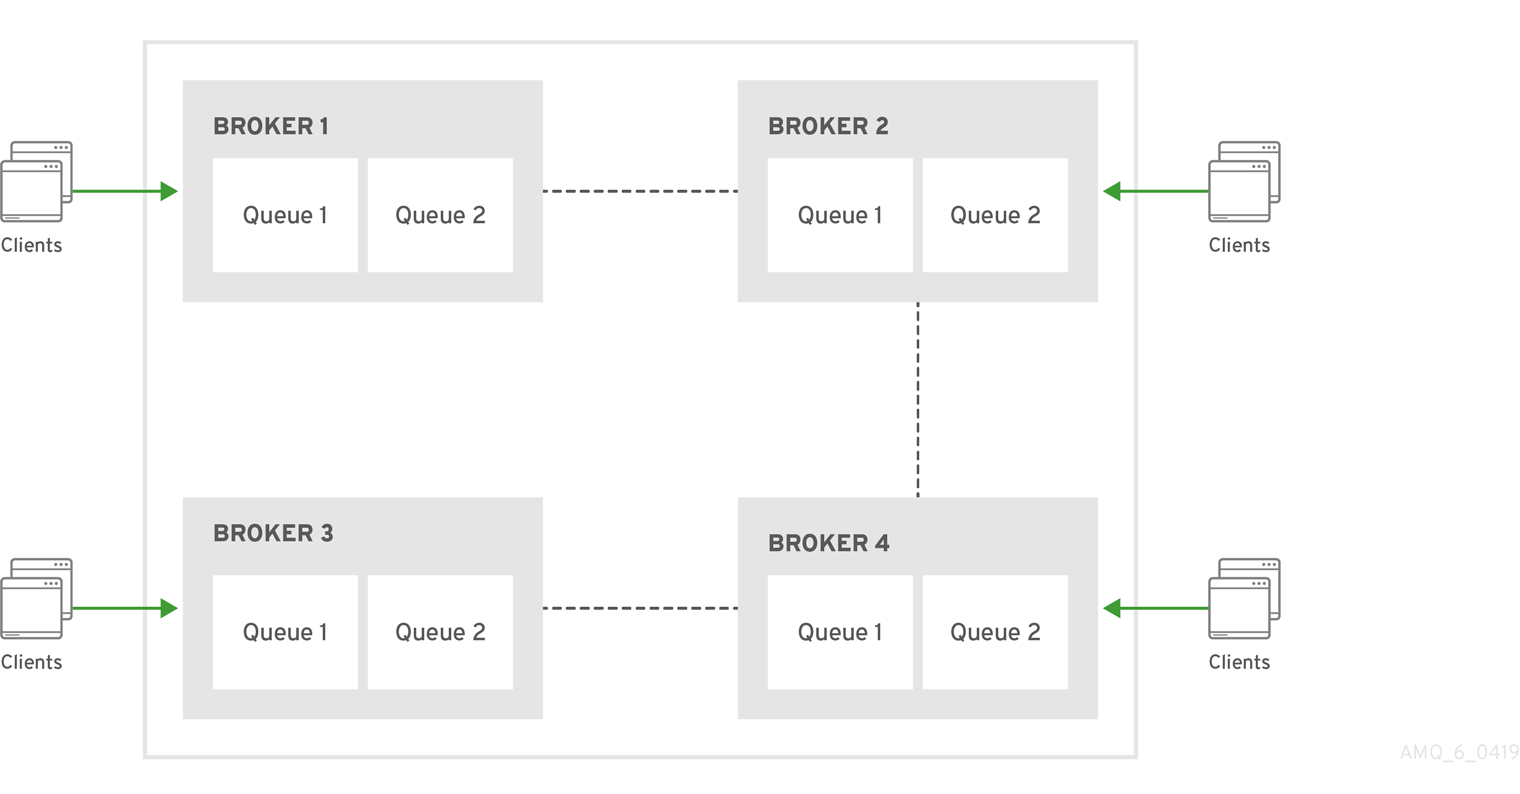 In a four-broker chain cluster the brokers are connected in a chain